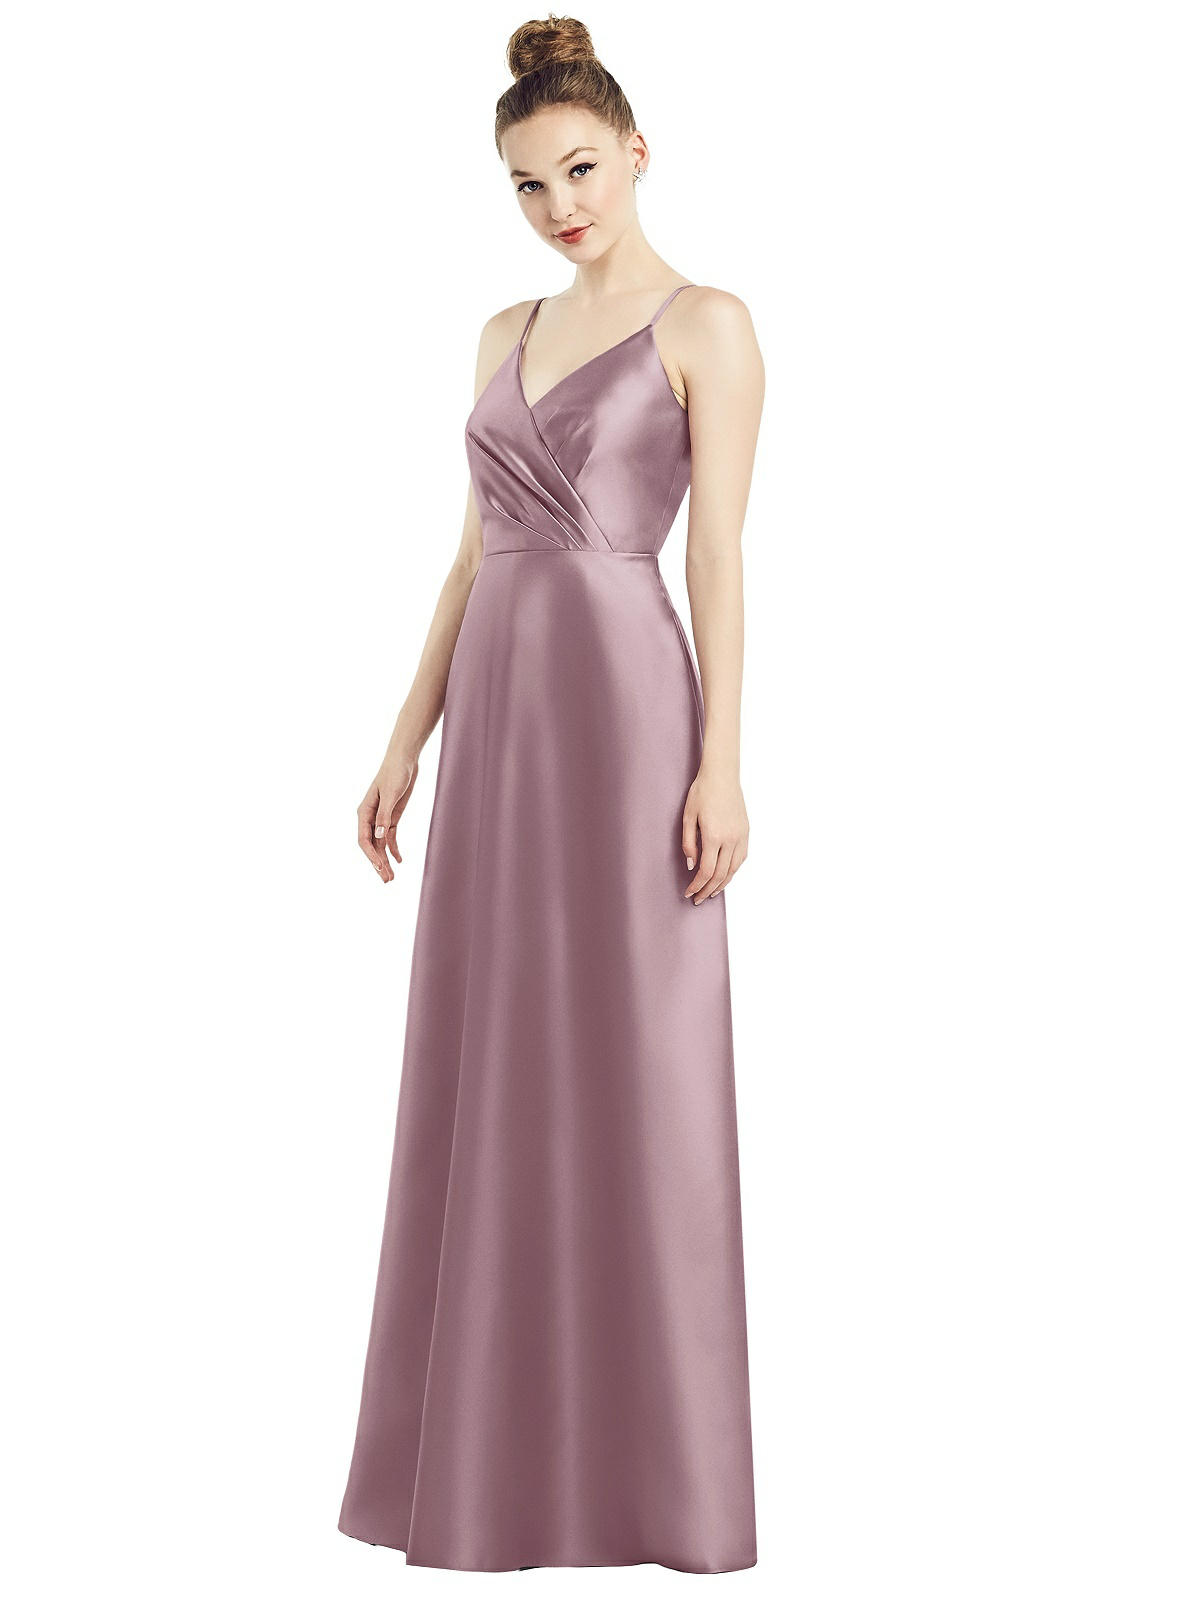 Floor length satin twill bridesmaid gown. Featuring an A-line skirt and a faux wrap bodice. Shown in colour Dusty Rose.